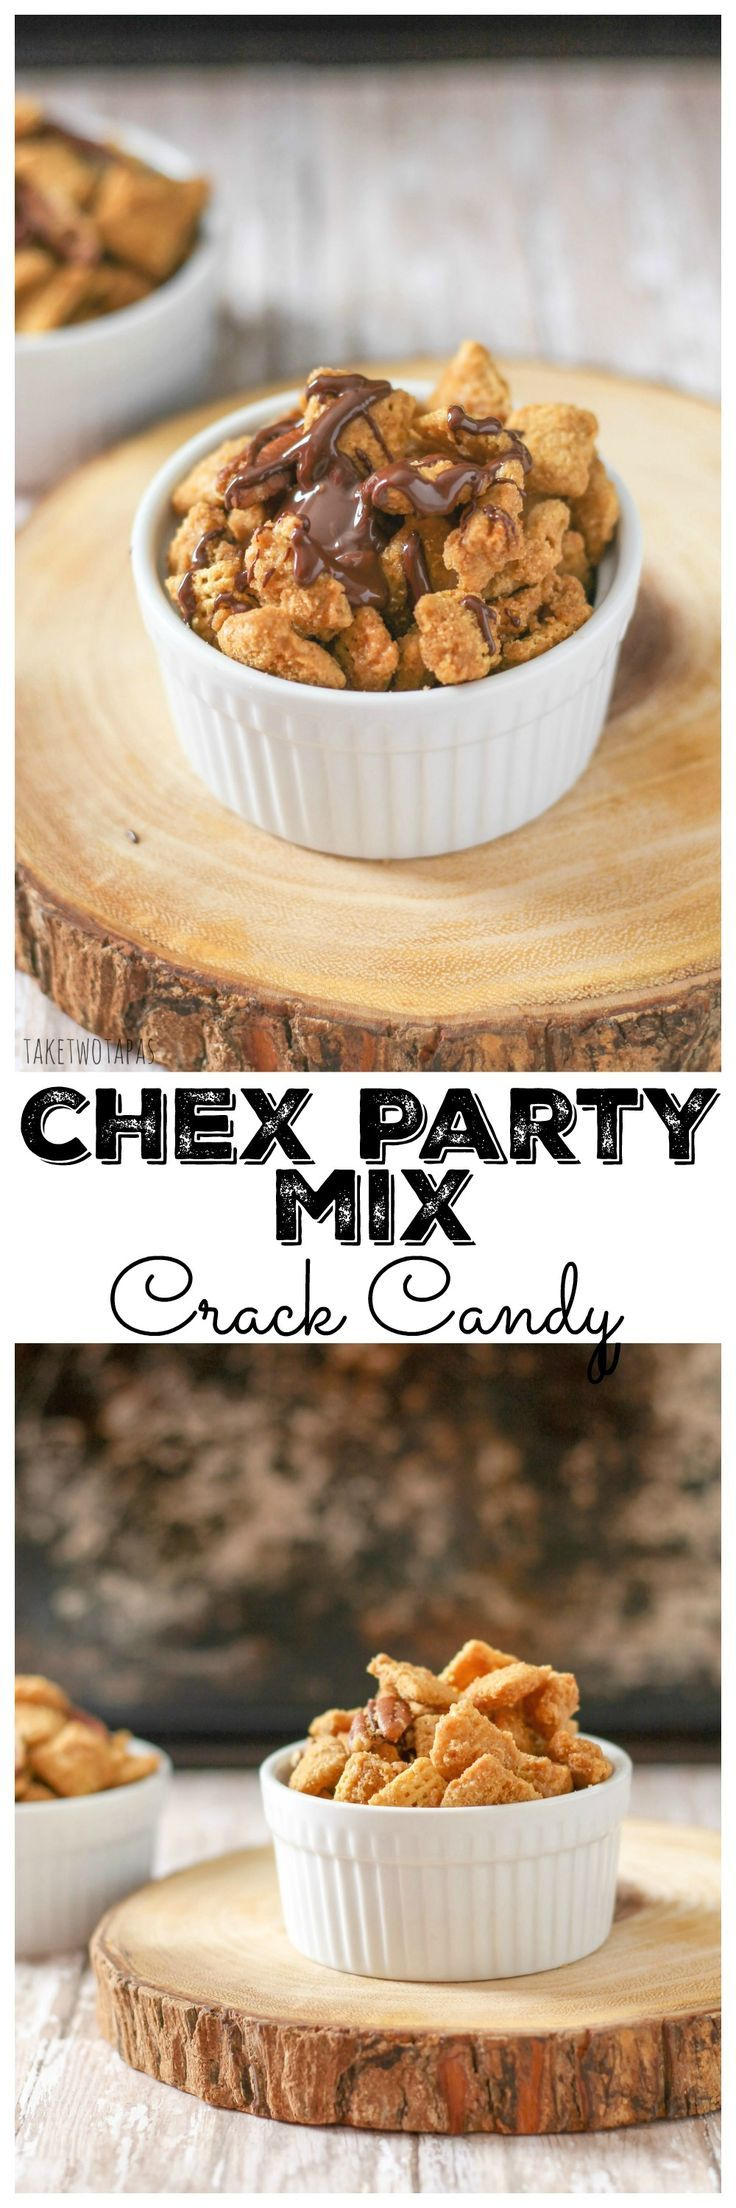 Best 25+ Chex party mix recipe ideas on Pinterest   Party mix ...